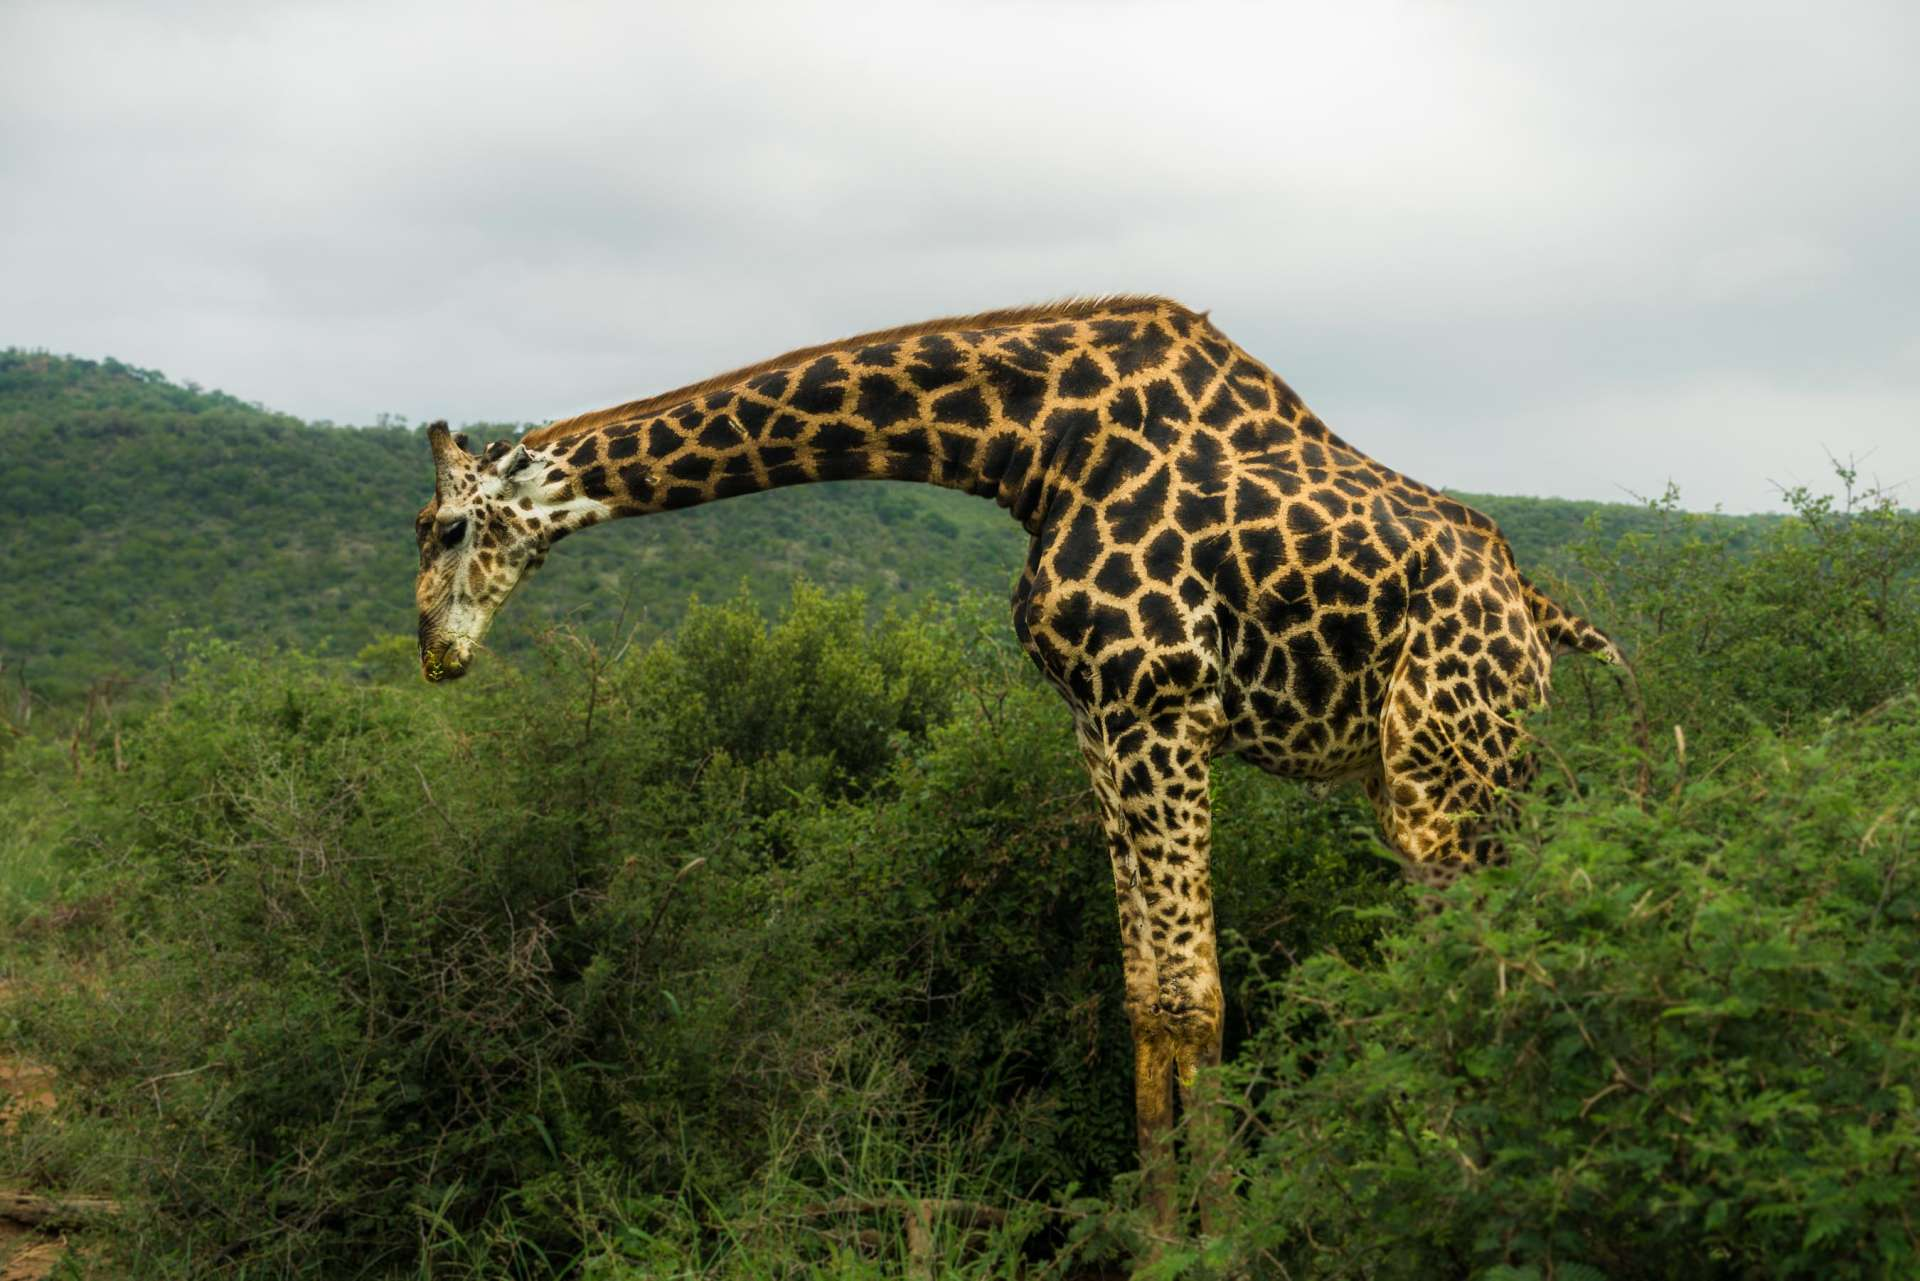 south africa madikwe safari pescart giraffe 3